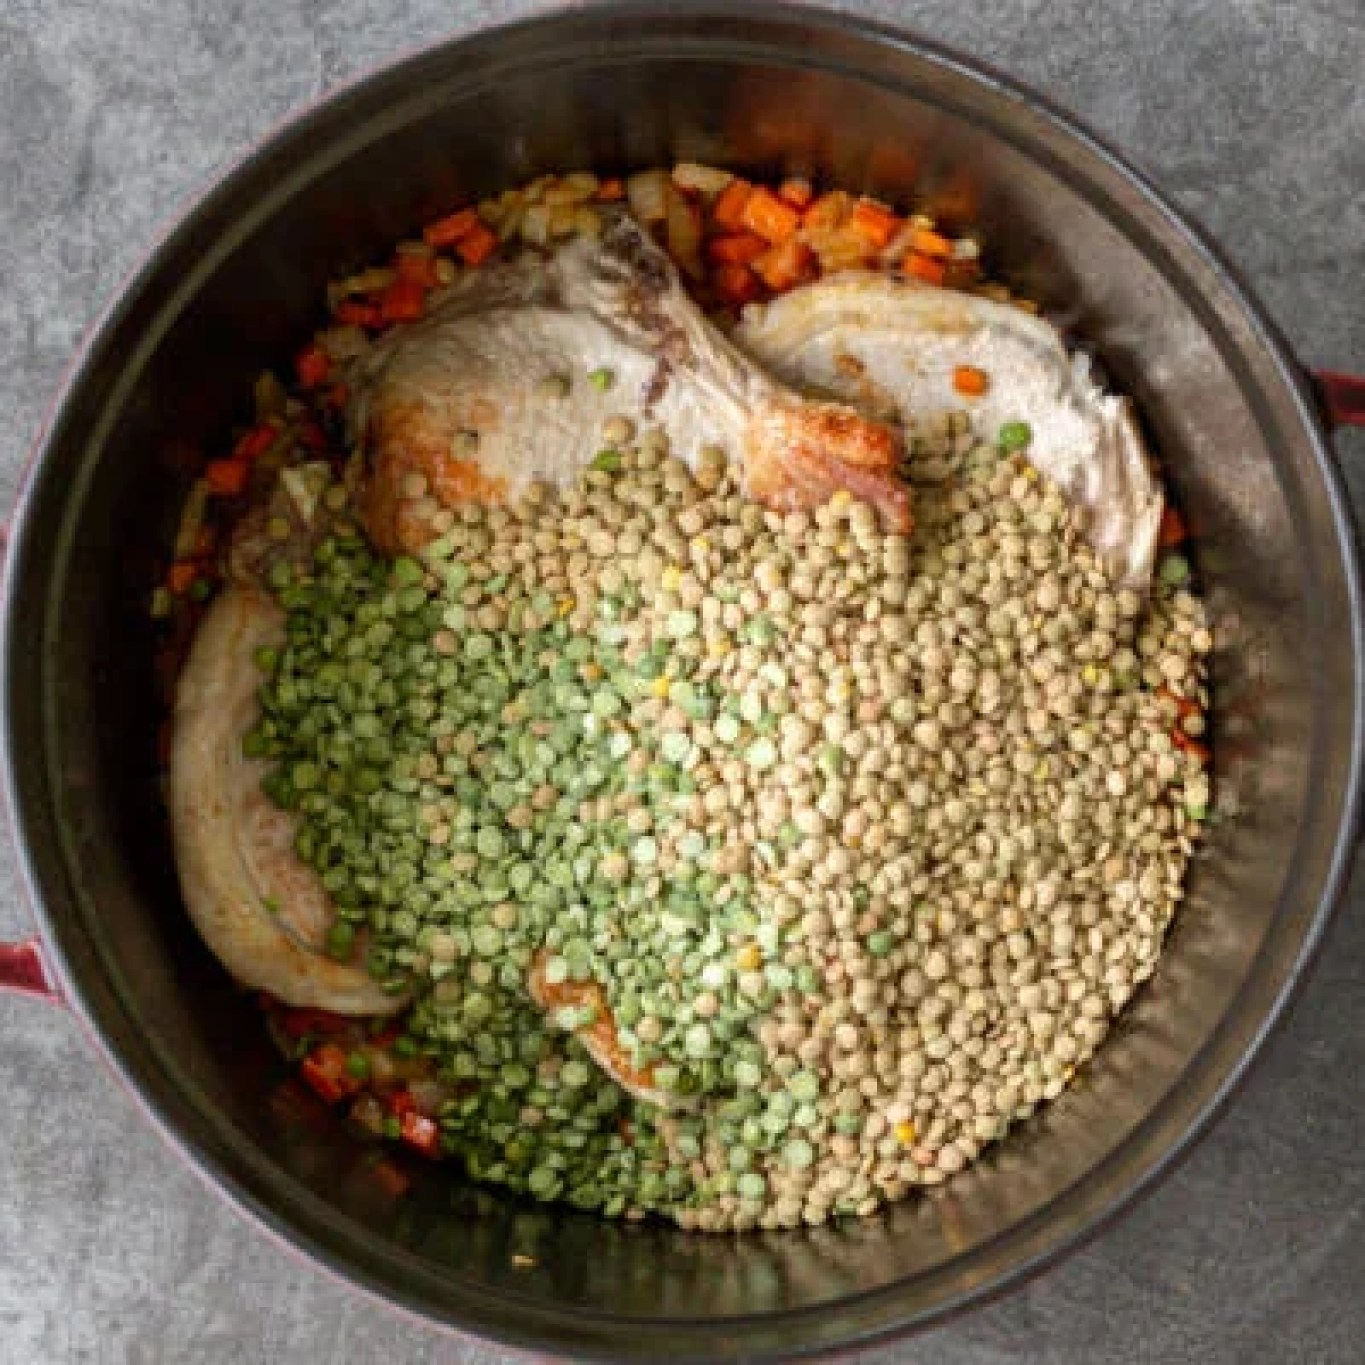 Lentils and slipt peas in a pot